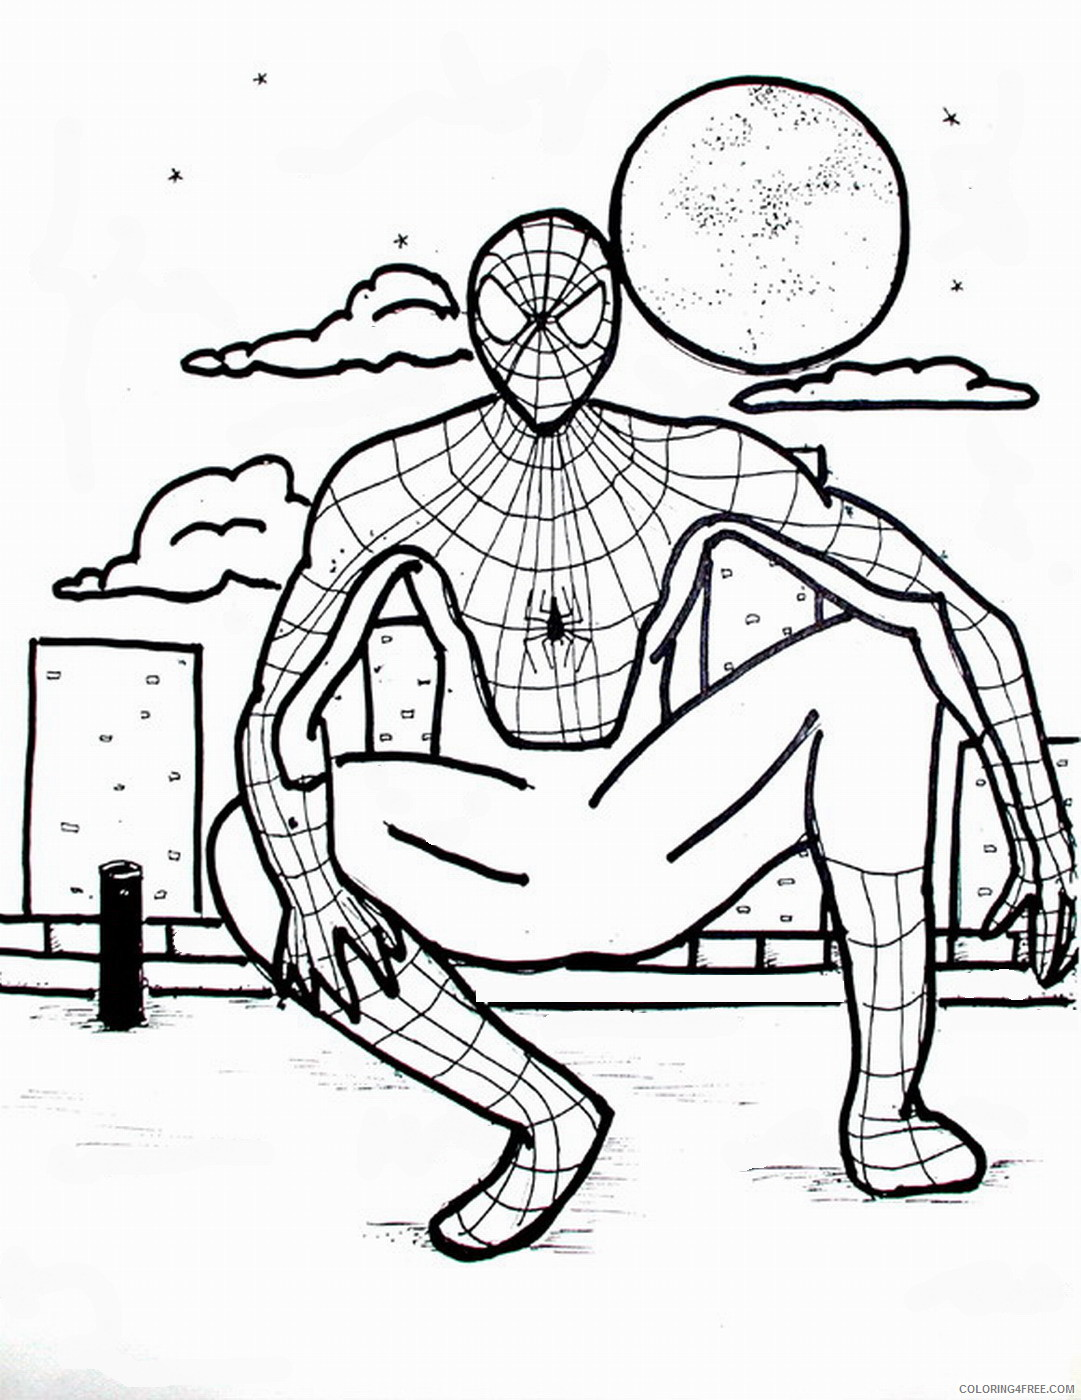 Spider Man Coloring Pages Superheroes Printable 2020 Coloring4free